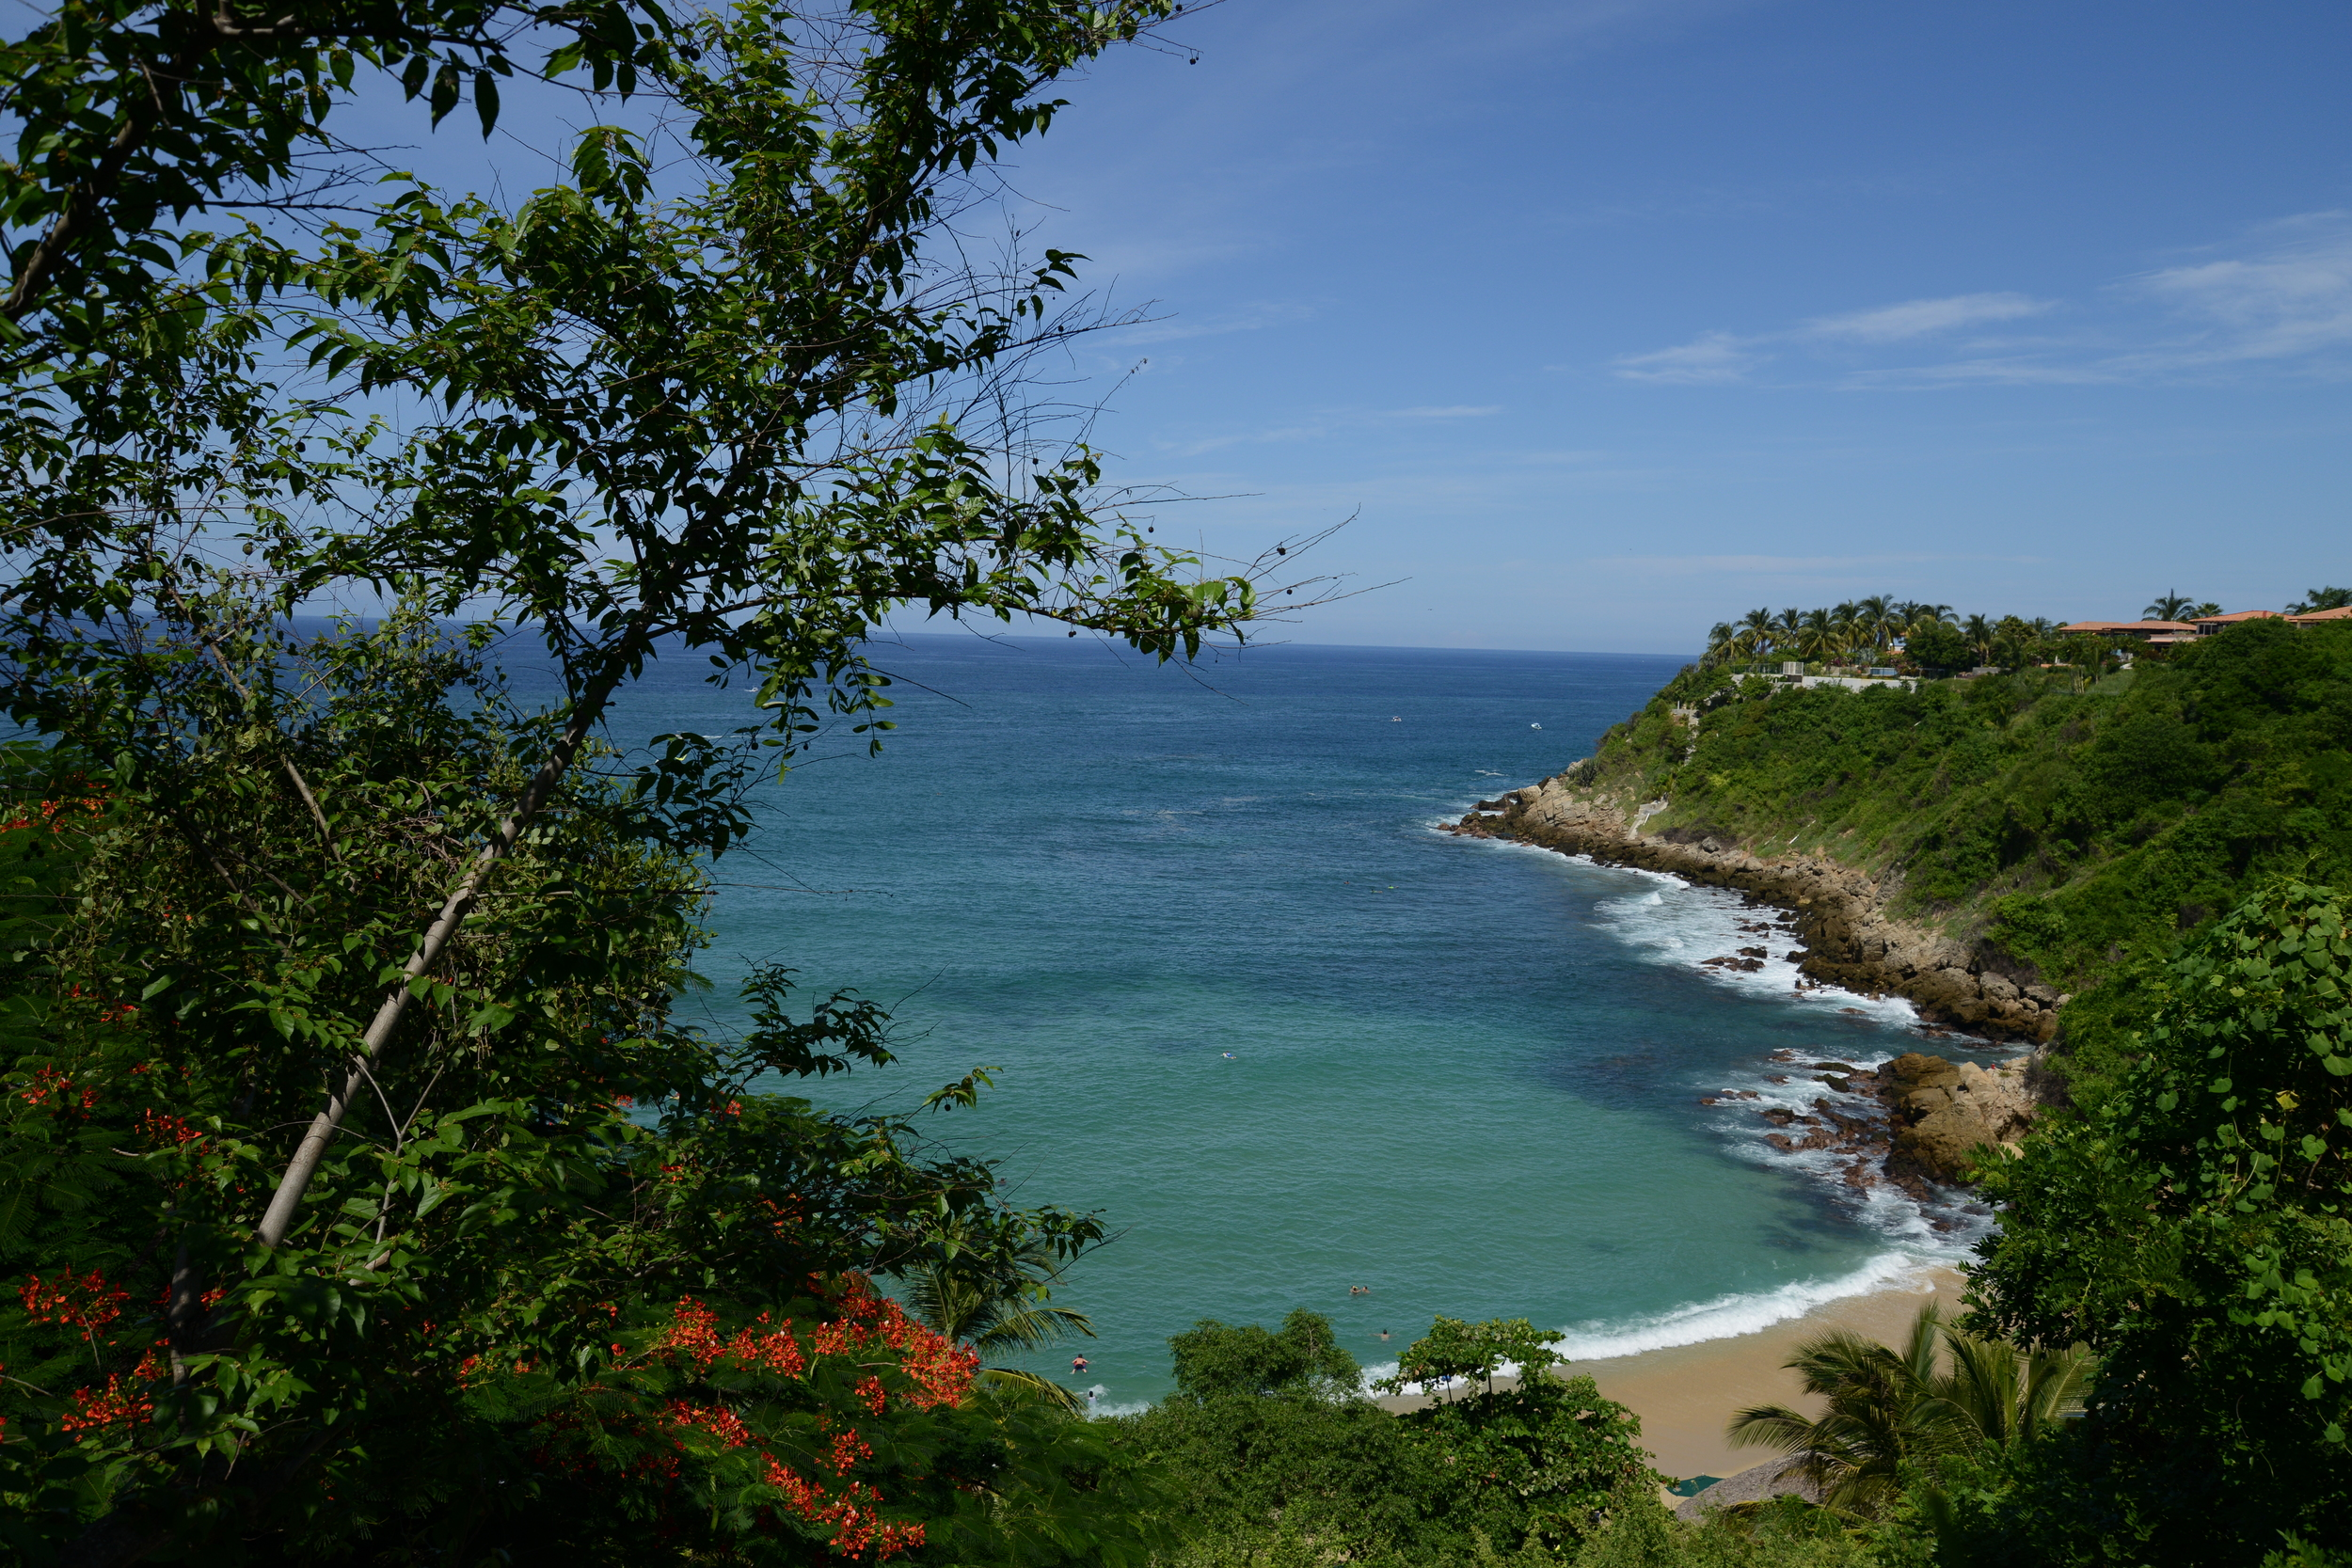 There are so many beautiful beaches and look outs all around Puerto